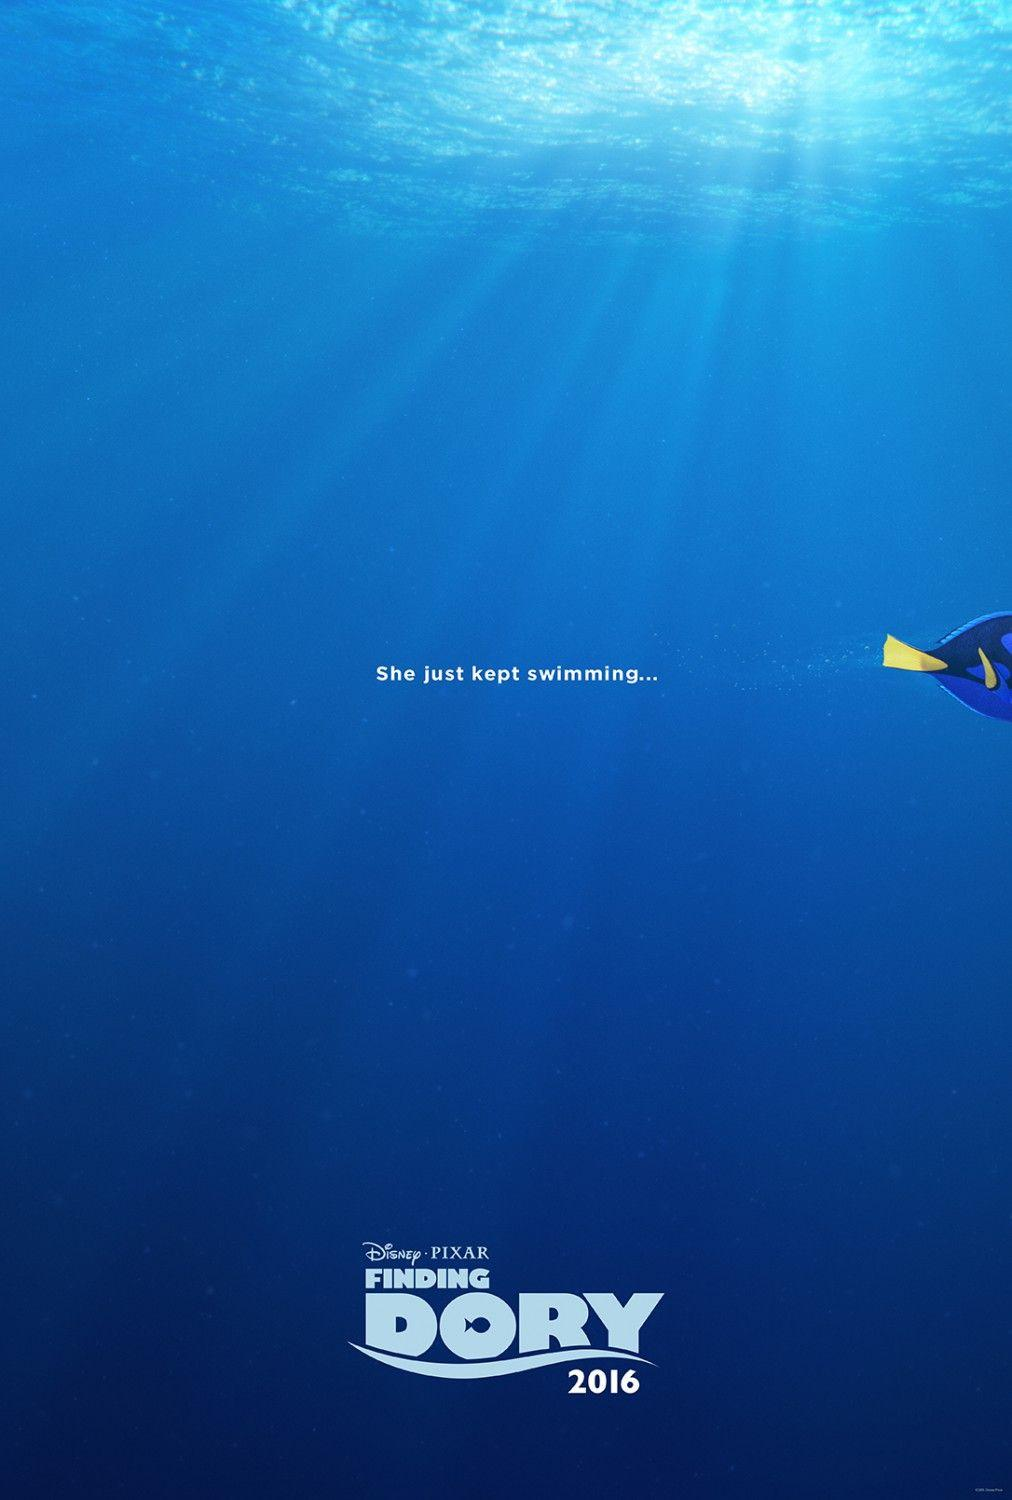 Finding Dory 2016 wallpapers – wallpapers free download